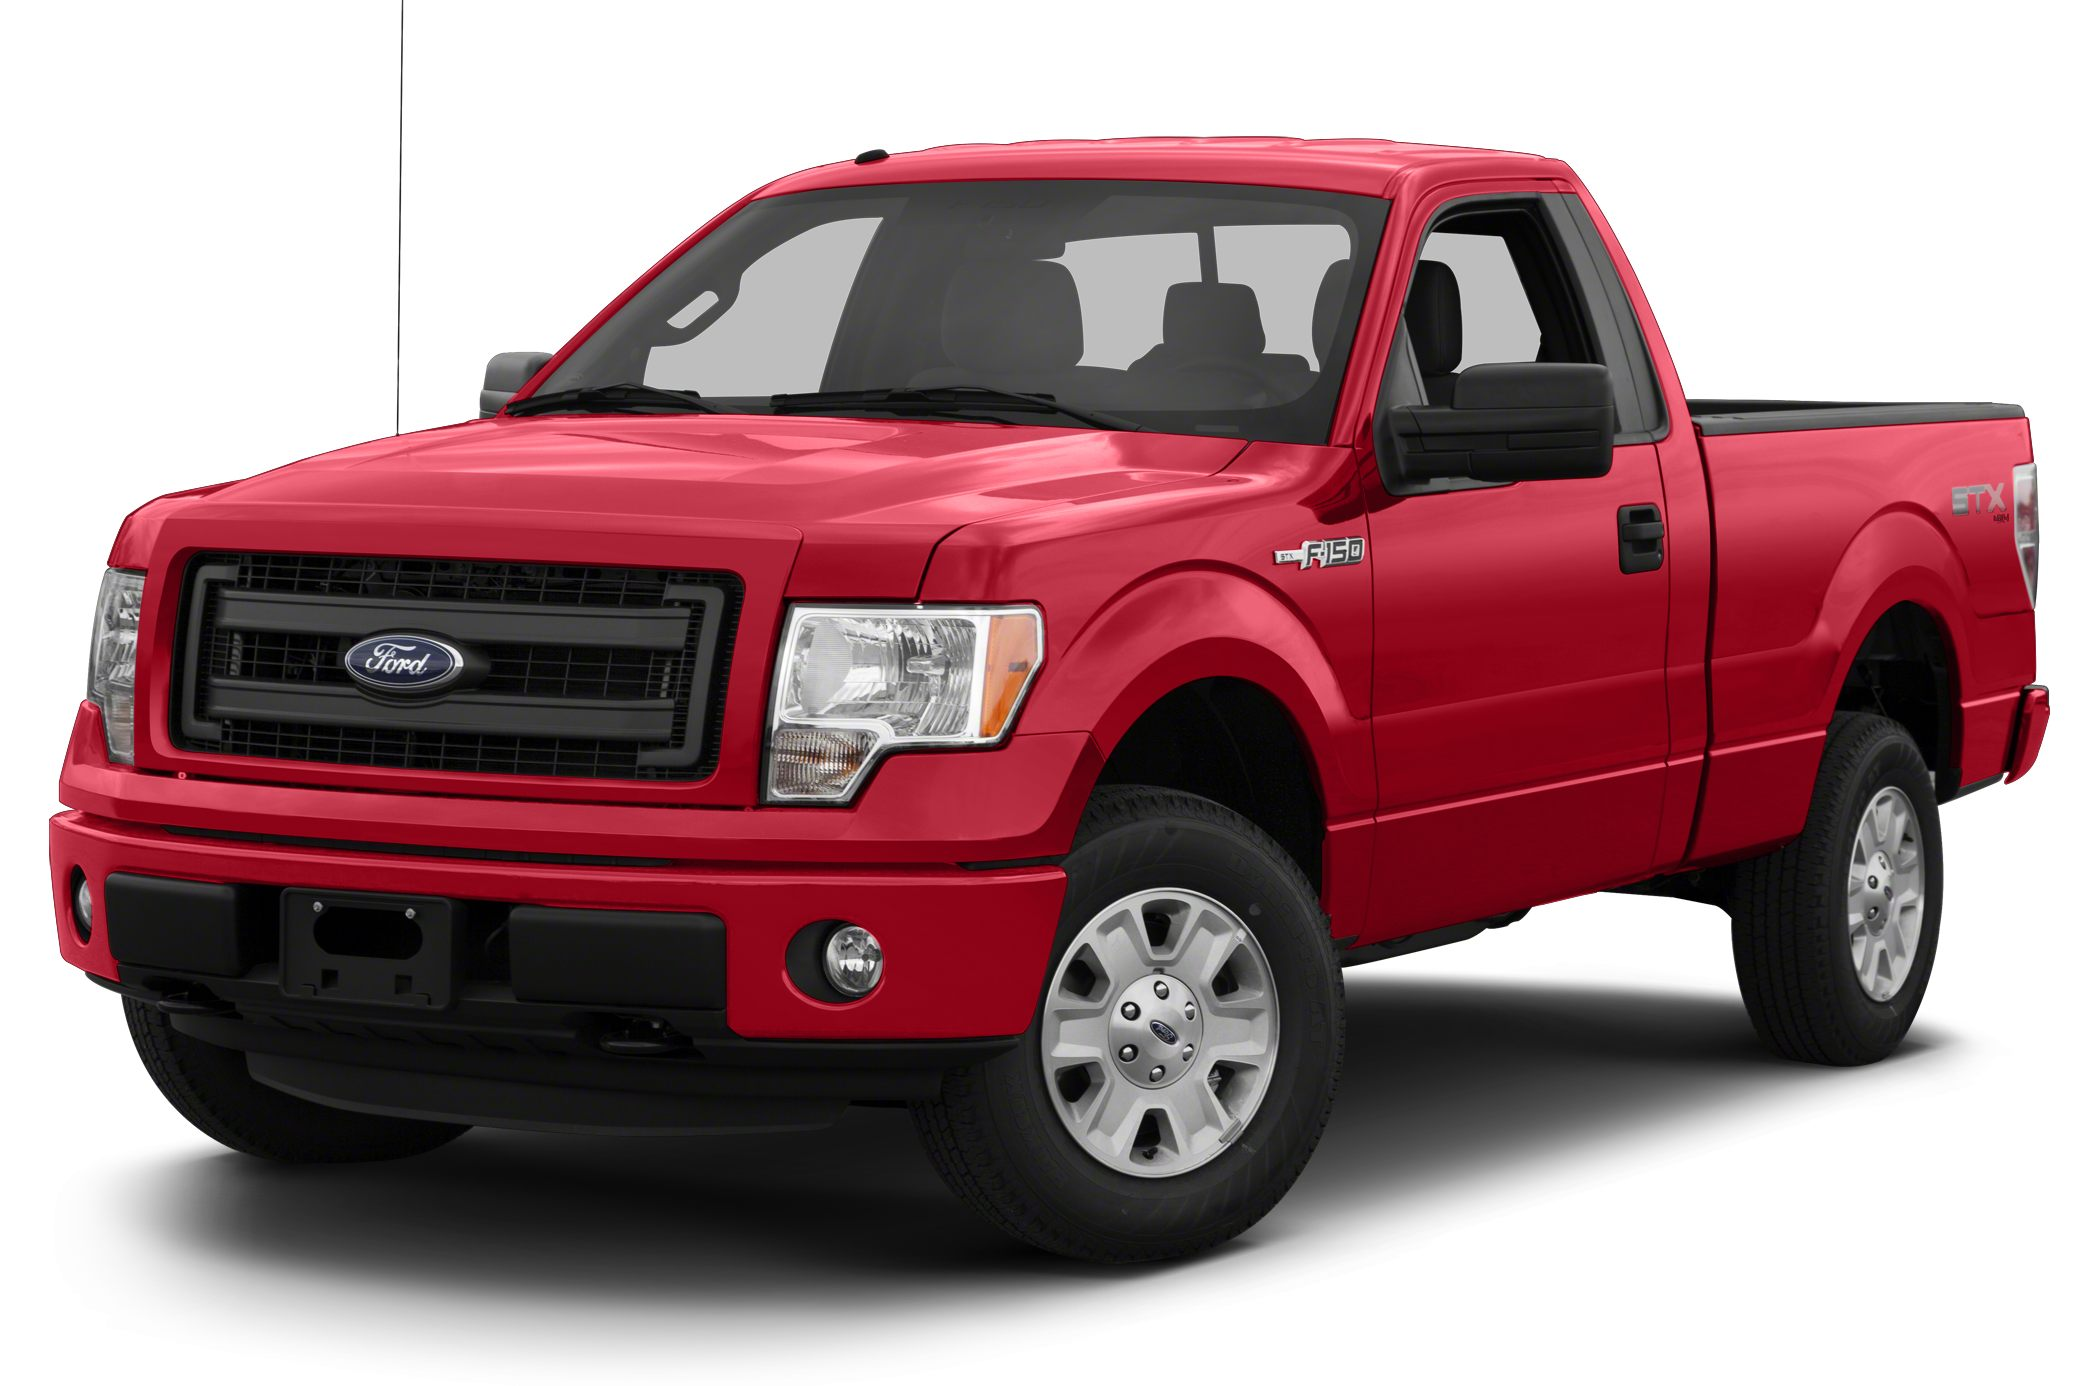 2013 Ford F150 STX Extended Cab Pickup for sale in Effingham for $30,500 with 6,120 miles